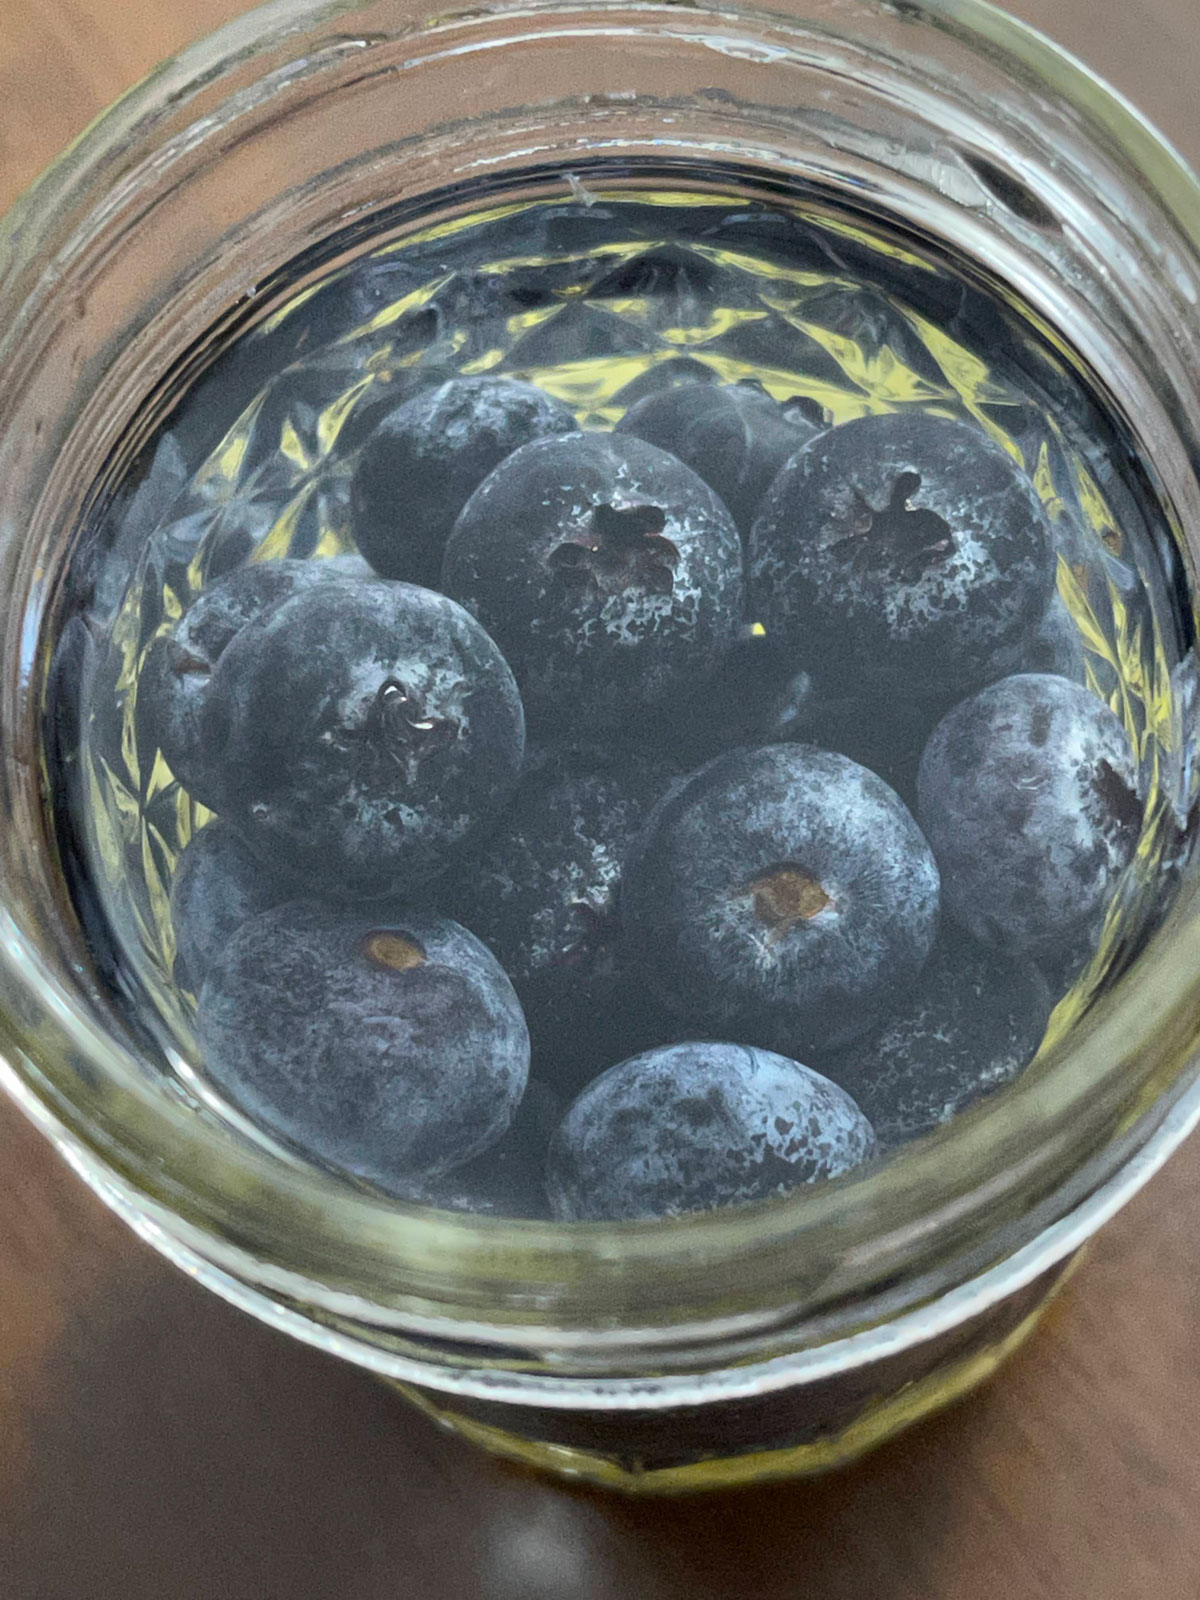 blueberry water with lemon slices